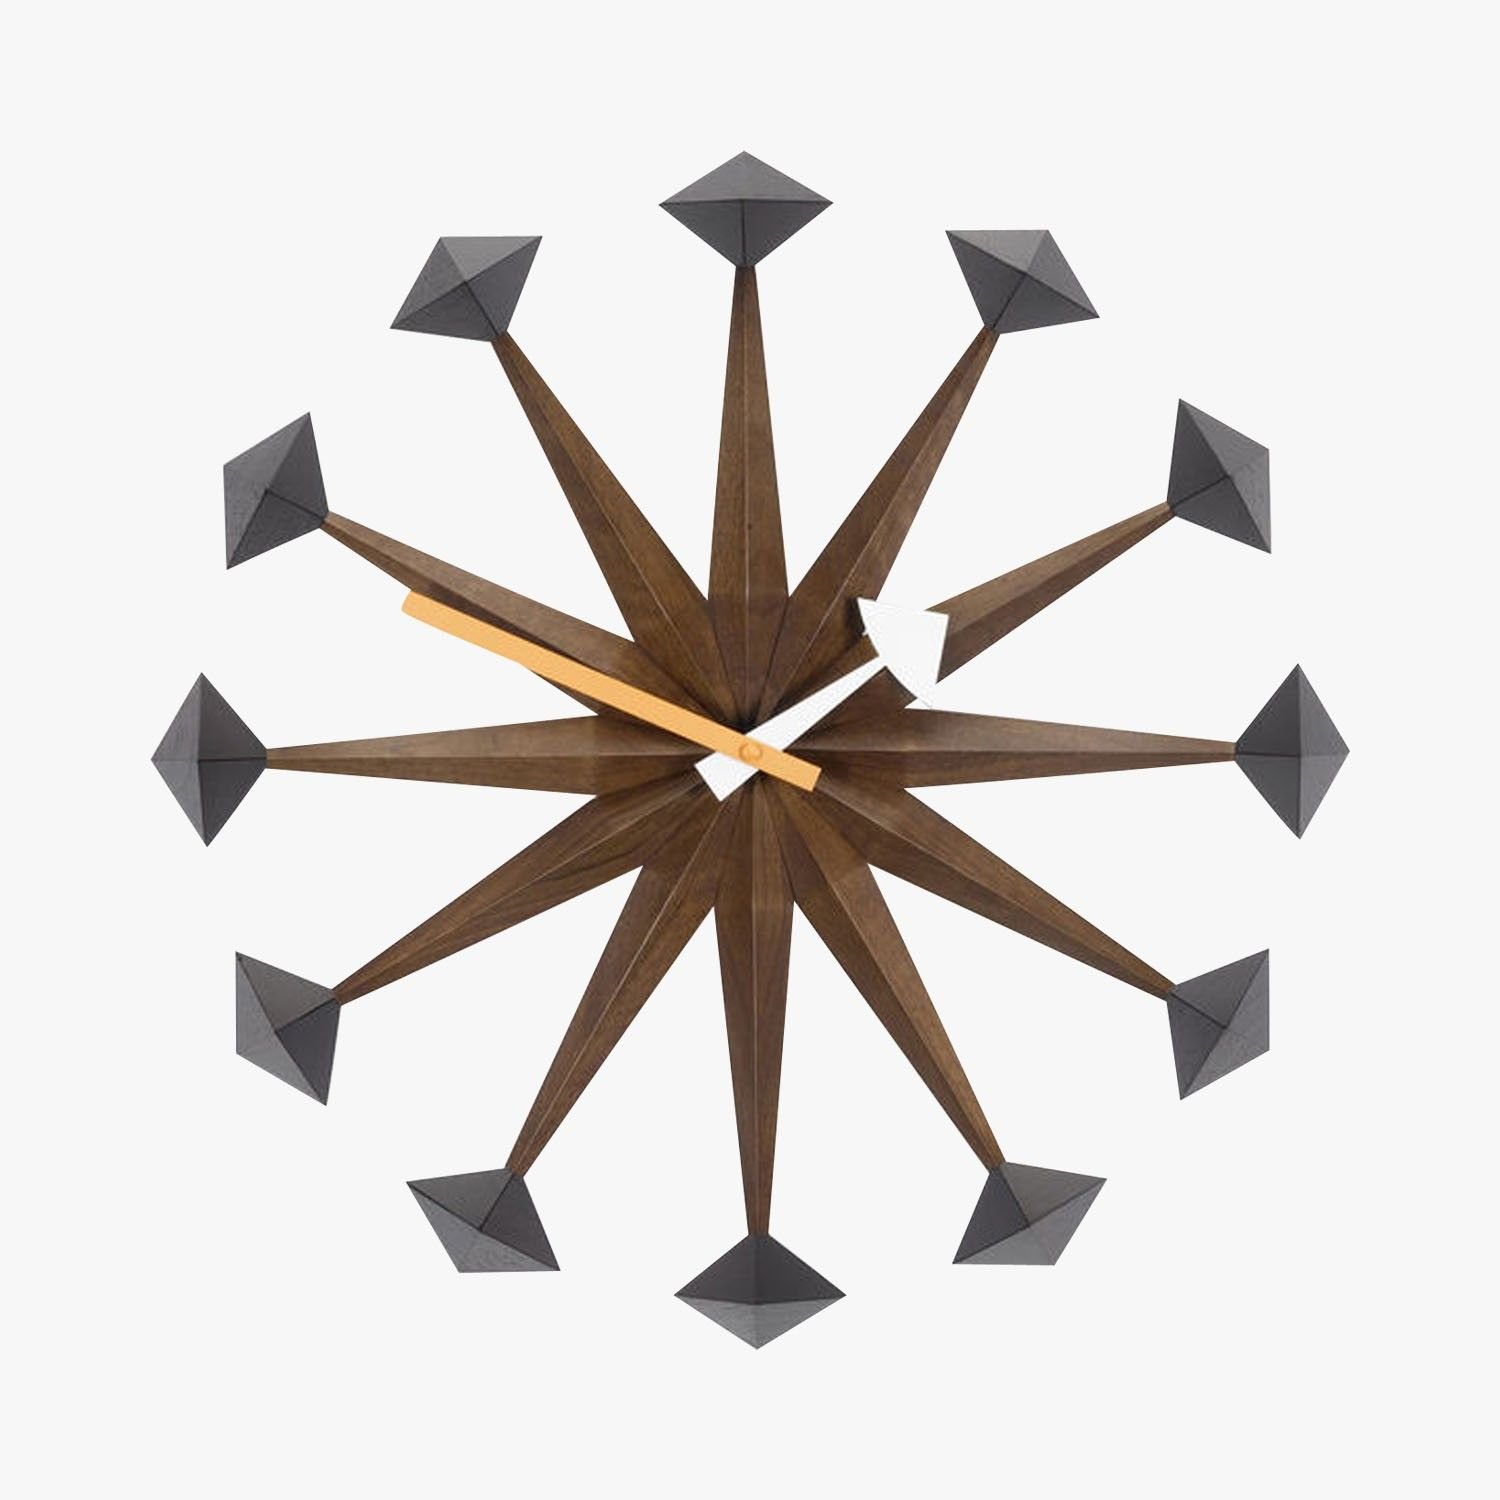 horloge, polygon clock, george nelson, 1948-1960 - vitra - find this